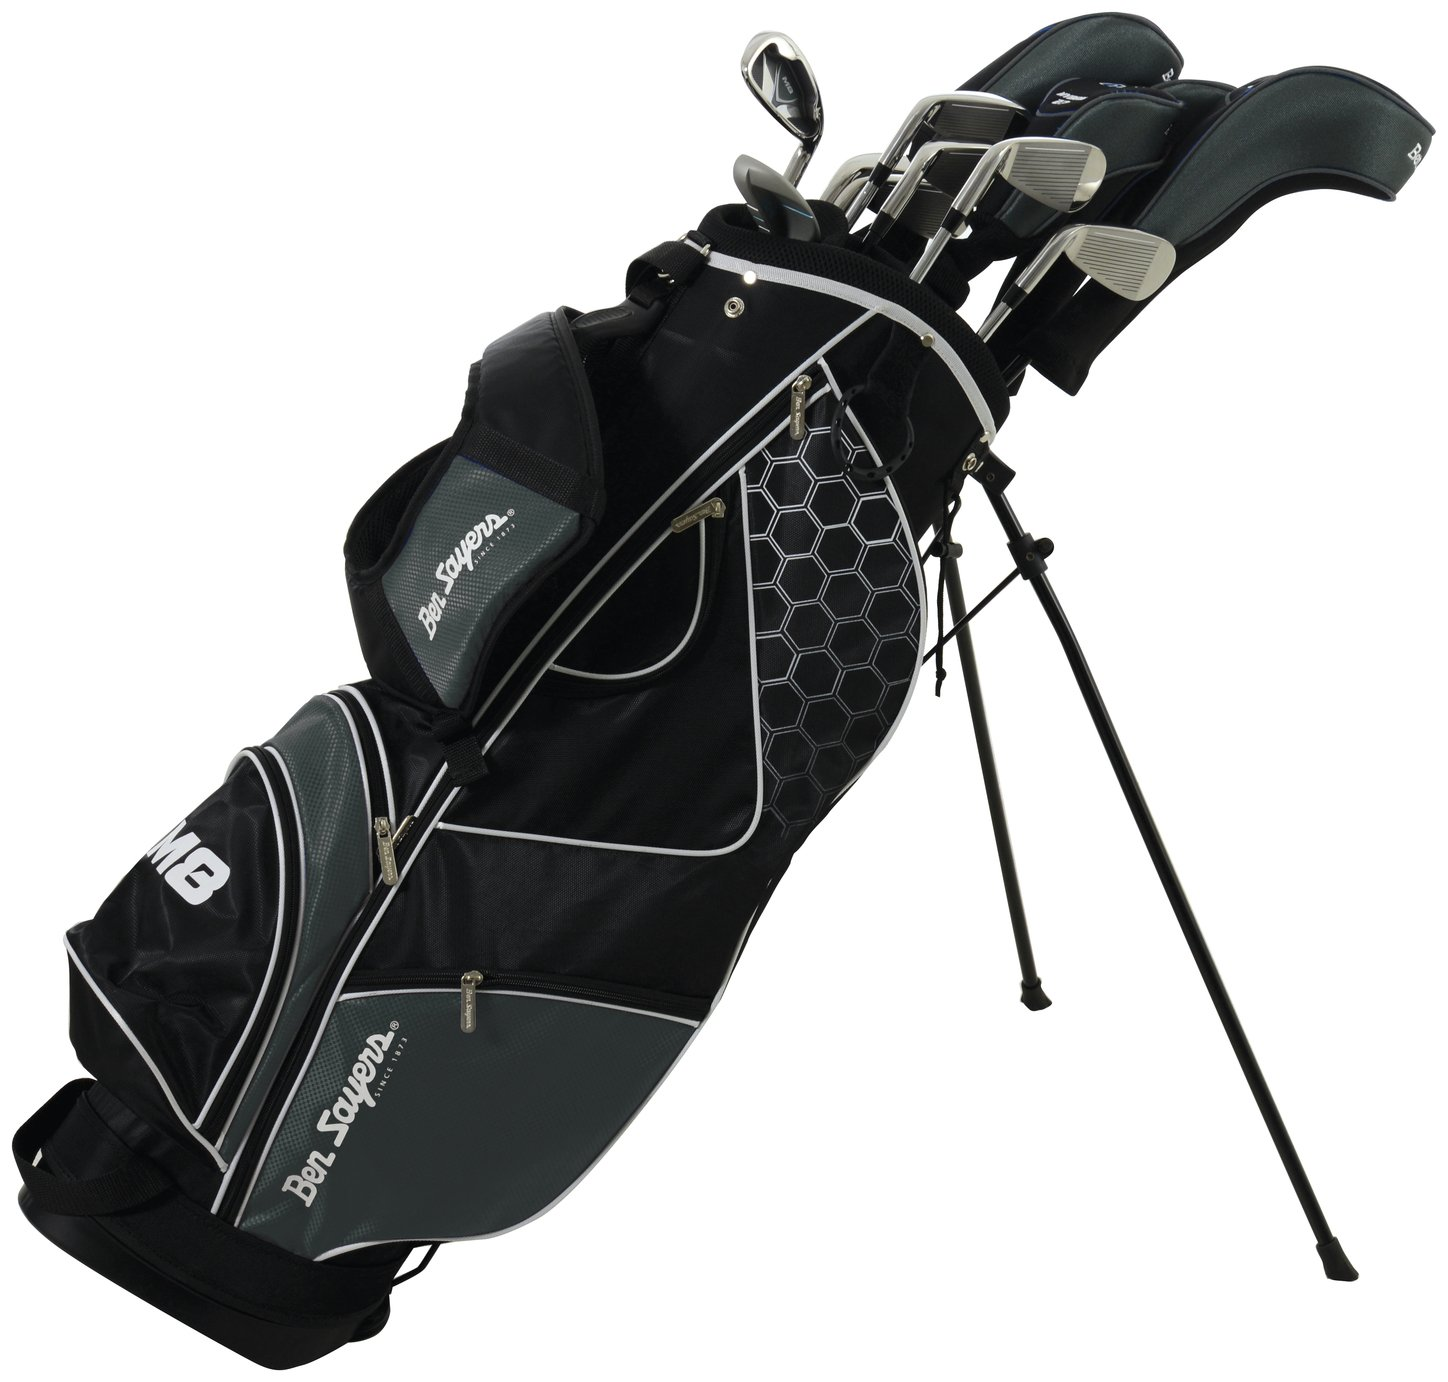 Image of Ben Sayers Mens' M8 Golf Get With Stand Bag - Black